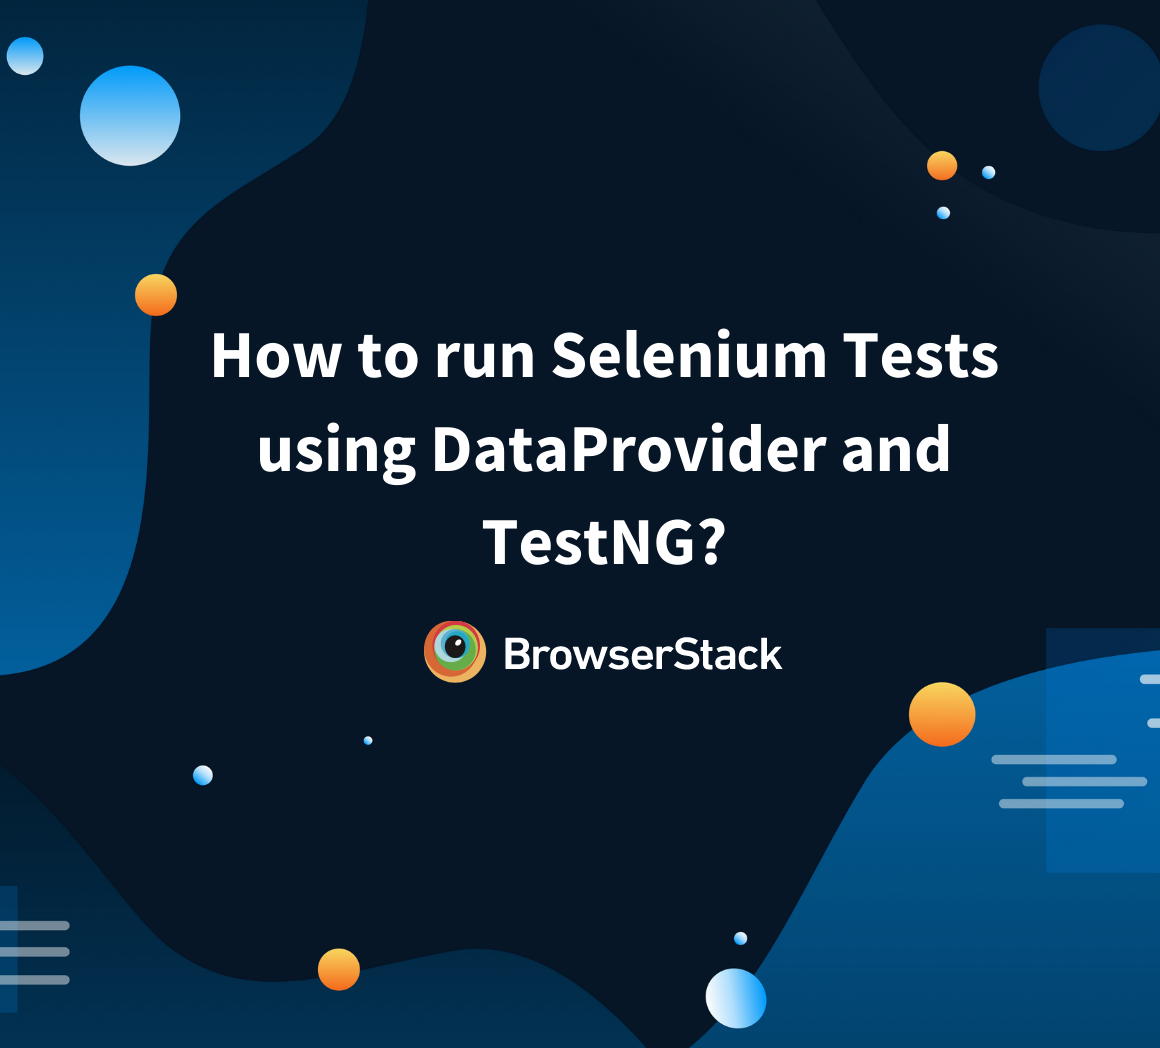 Selenium Tests using Dataprovider and TestNG?